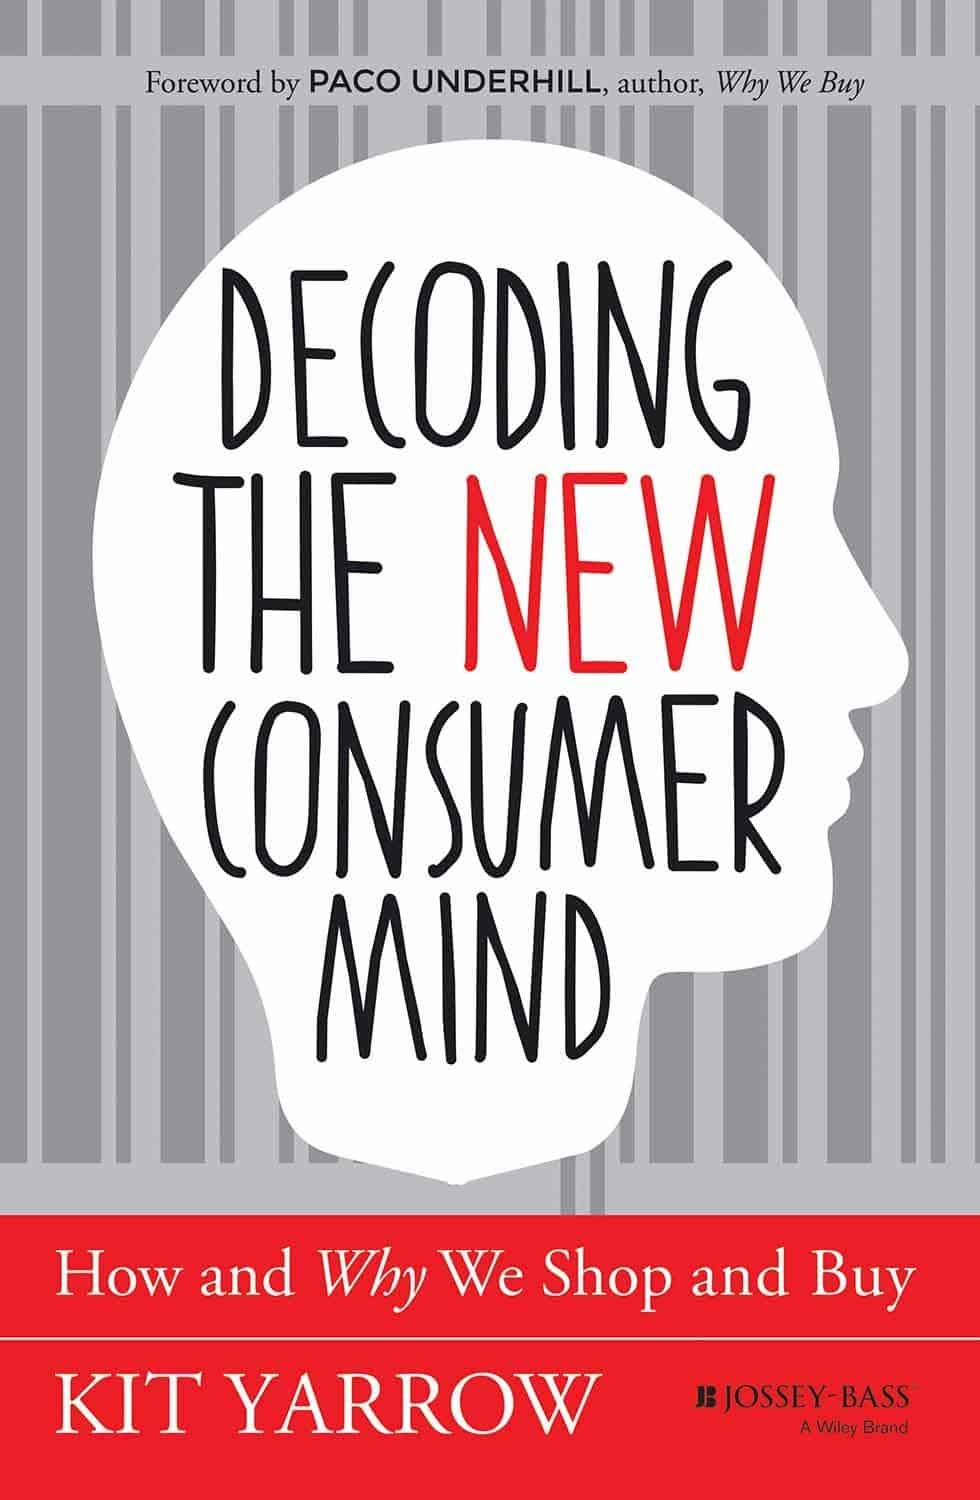 amazon Decoding the new consumer mind - Kit Yarrow reviews Decoding the new consumer mind - Kit Yarrow on amazon newest Decoding the new consumer mind - Kit Yarrow prices of Decoding the new consumer mind - Kit Yarrow Decoding the new consumer mind - Kit Yarrow deals best deals on Decoding the new consumer mind - Kit Yarrow buying a Decoding the new consumer mind - Kit Yarrow lastest Decoding the new consumer mind - Kit Yarrow what is a Decoding the new consumer mind - Kit Yarrow Decoding the new consumer mind - Kit Yarrow at amazon where to buy Decoding the new consumer mind - Kit Yarrow where can i you get a Decoding the new consumer mind - Kit Yarrow online purchase Decoding the new consumer mind - Kit Yarrow sale off discount cheapest Decoding the new consumer mind - Kit Yarrow  Decoding the new consumer mind - Kit Yarrow for sale marketer as philosopher book hire a book marketer how to become a book marketer death of a marketer book how to be a good marketer book best book marketer best marketer wins book curious marketer book digital marketer book book every marketer should read ebook marketers kindle ebook marketer marketer ebook facebook marketer legendary marketer free book book for marketer facebook marketers facebook marketer jobs facebook marketer salary facebook marketer resume legendary marketer book ming lee book best marketer wins legendary marketer book review social media marketer book legendary marketer book pdf reedsy book marketer savvy book marketer the savvy book marketer the best marketer wins book the digital marketer book book for marketers best book for marketers book marketers in lagos book marketers in usa book marketers in nigeria book marketers in south africa book marketers distributors in nigeria book publishers marketers marketers book pdf book marketers book marketers uk christian book marketers book marketer